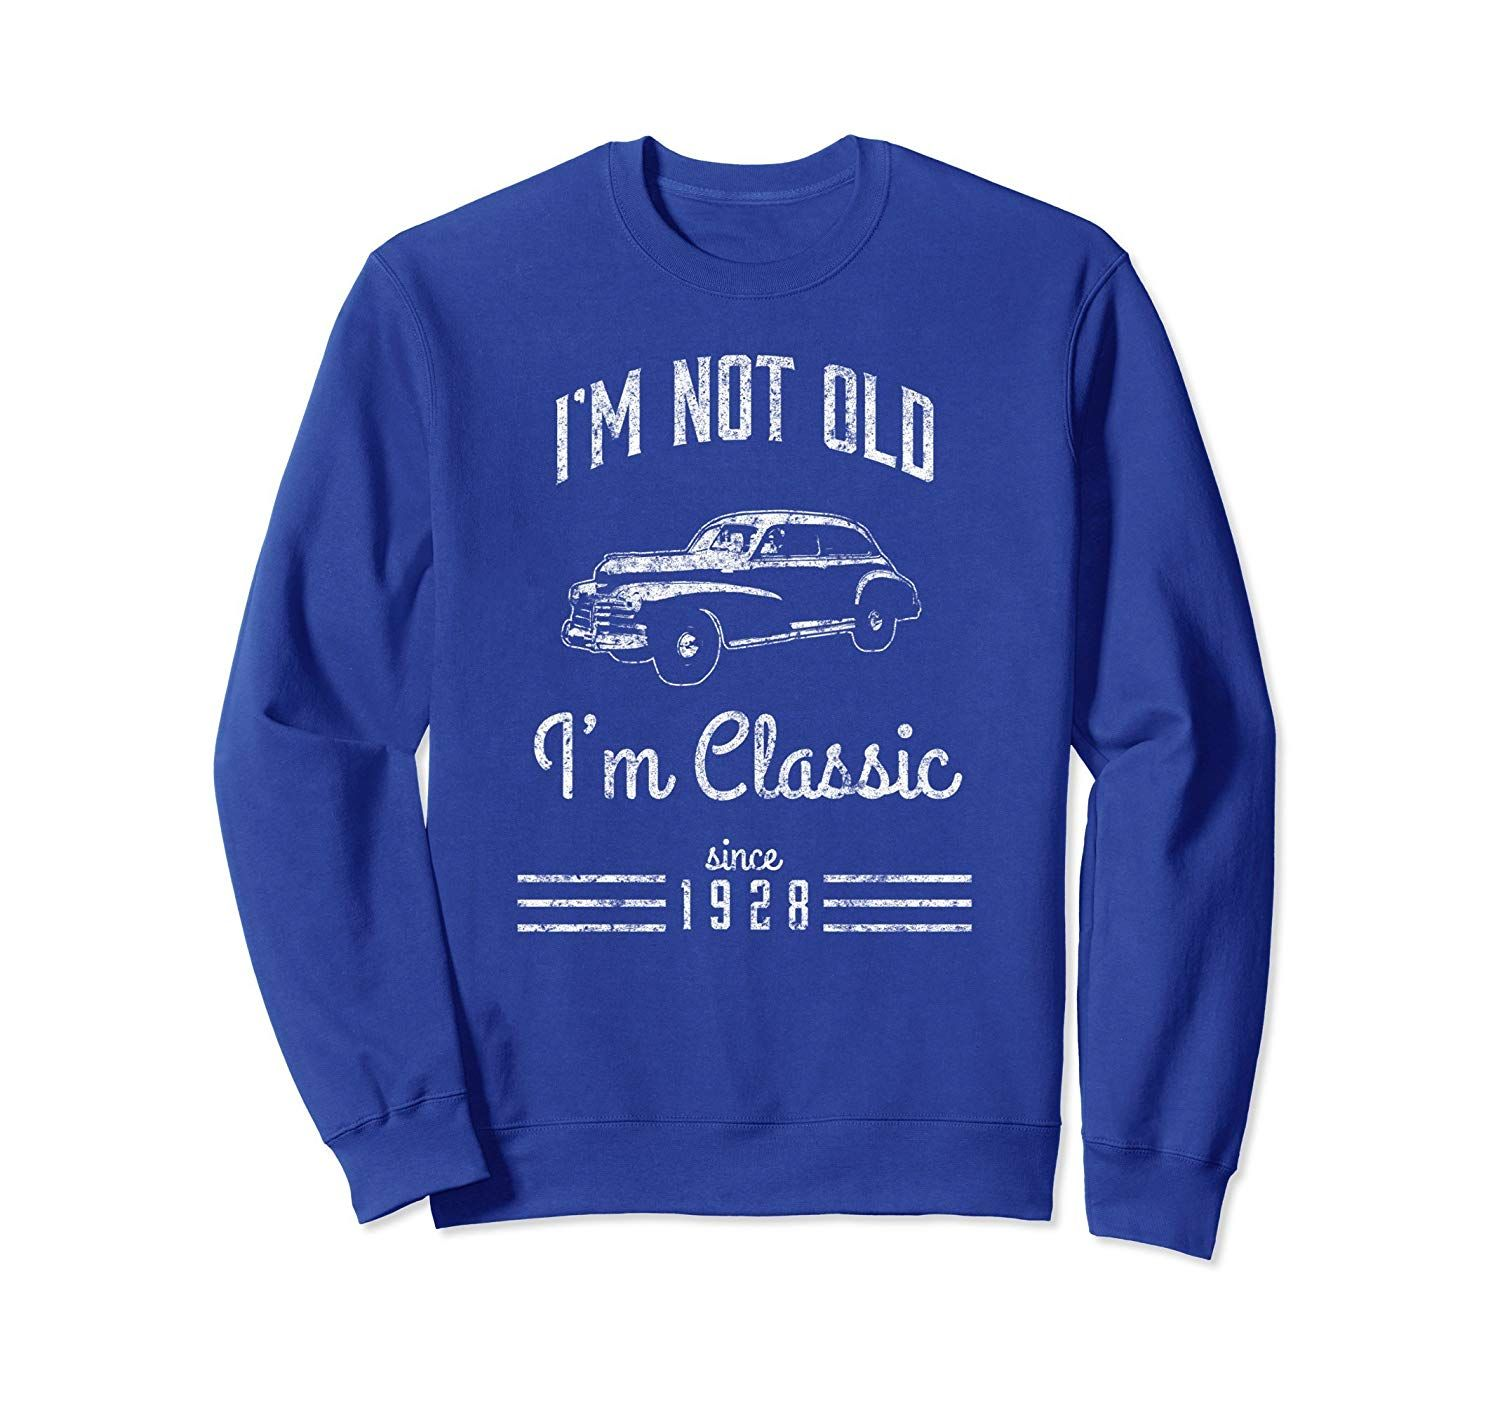 Not Old Classic Car Funny Sweatshirt 90th Birthday Gift 1928-Colonhue